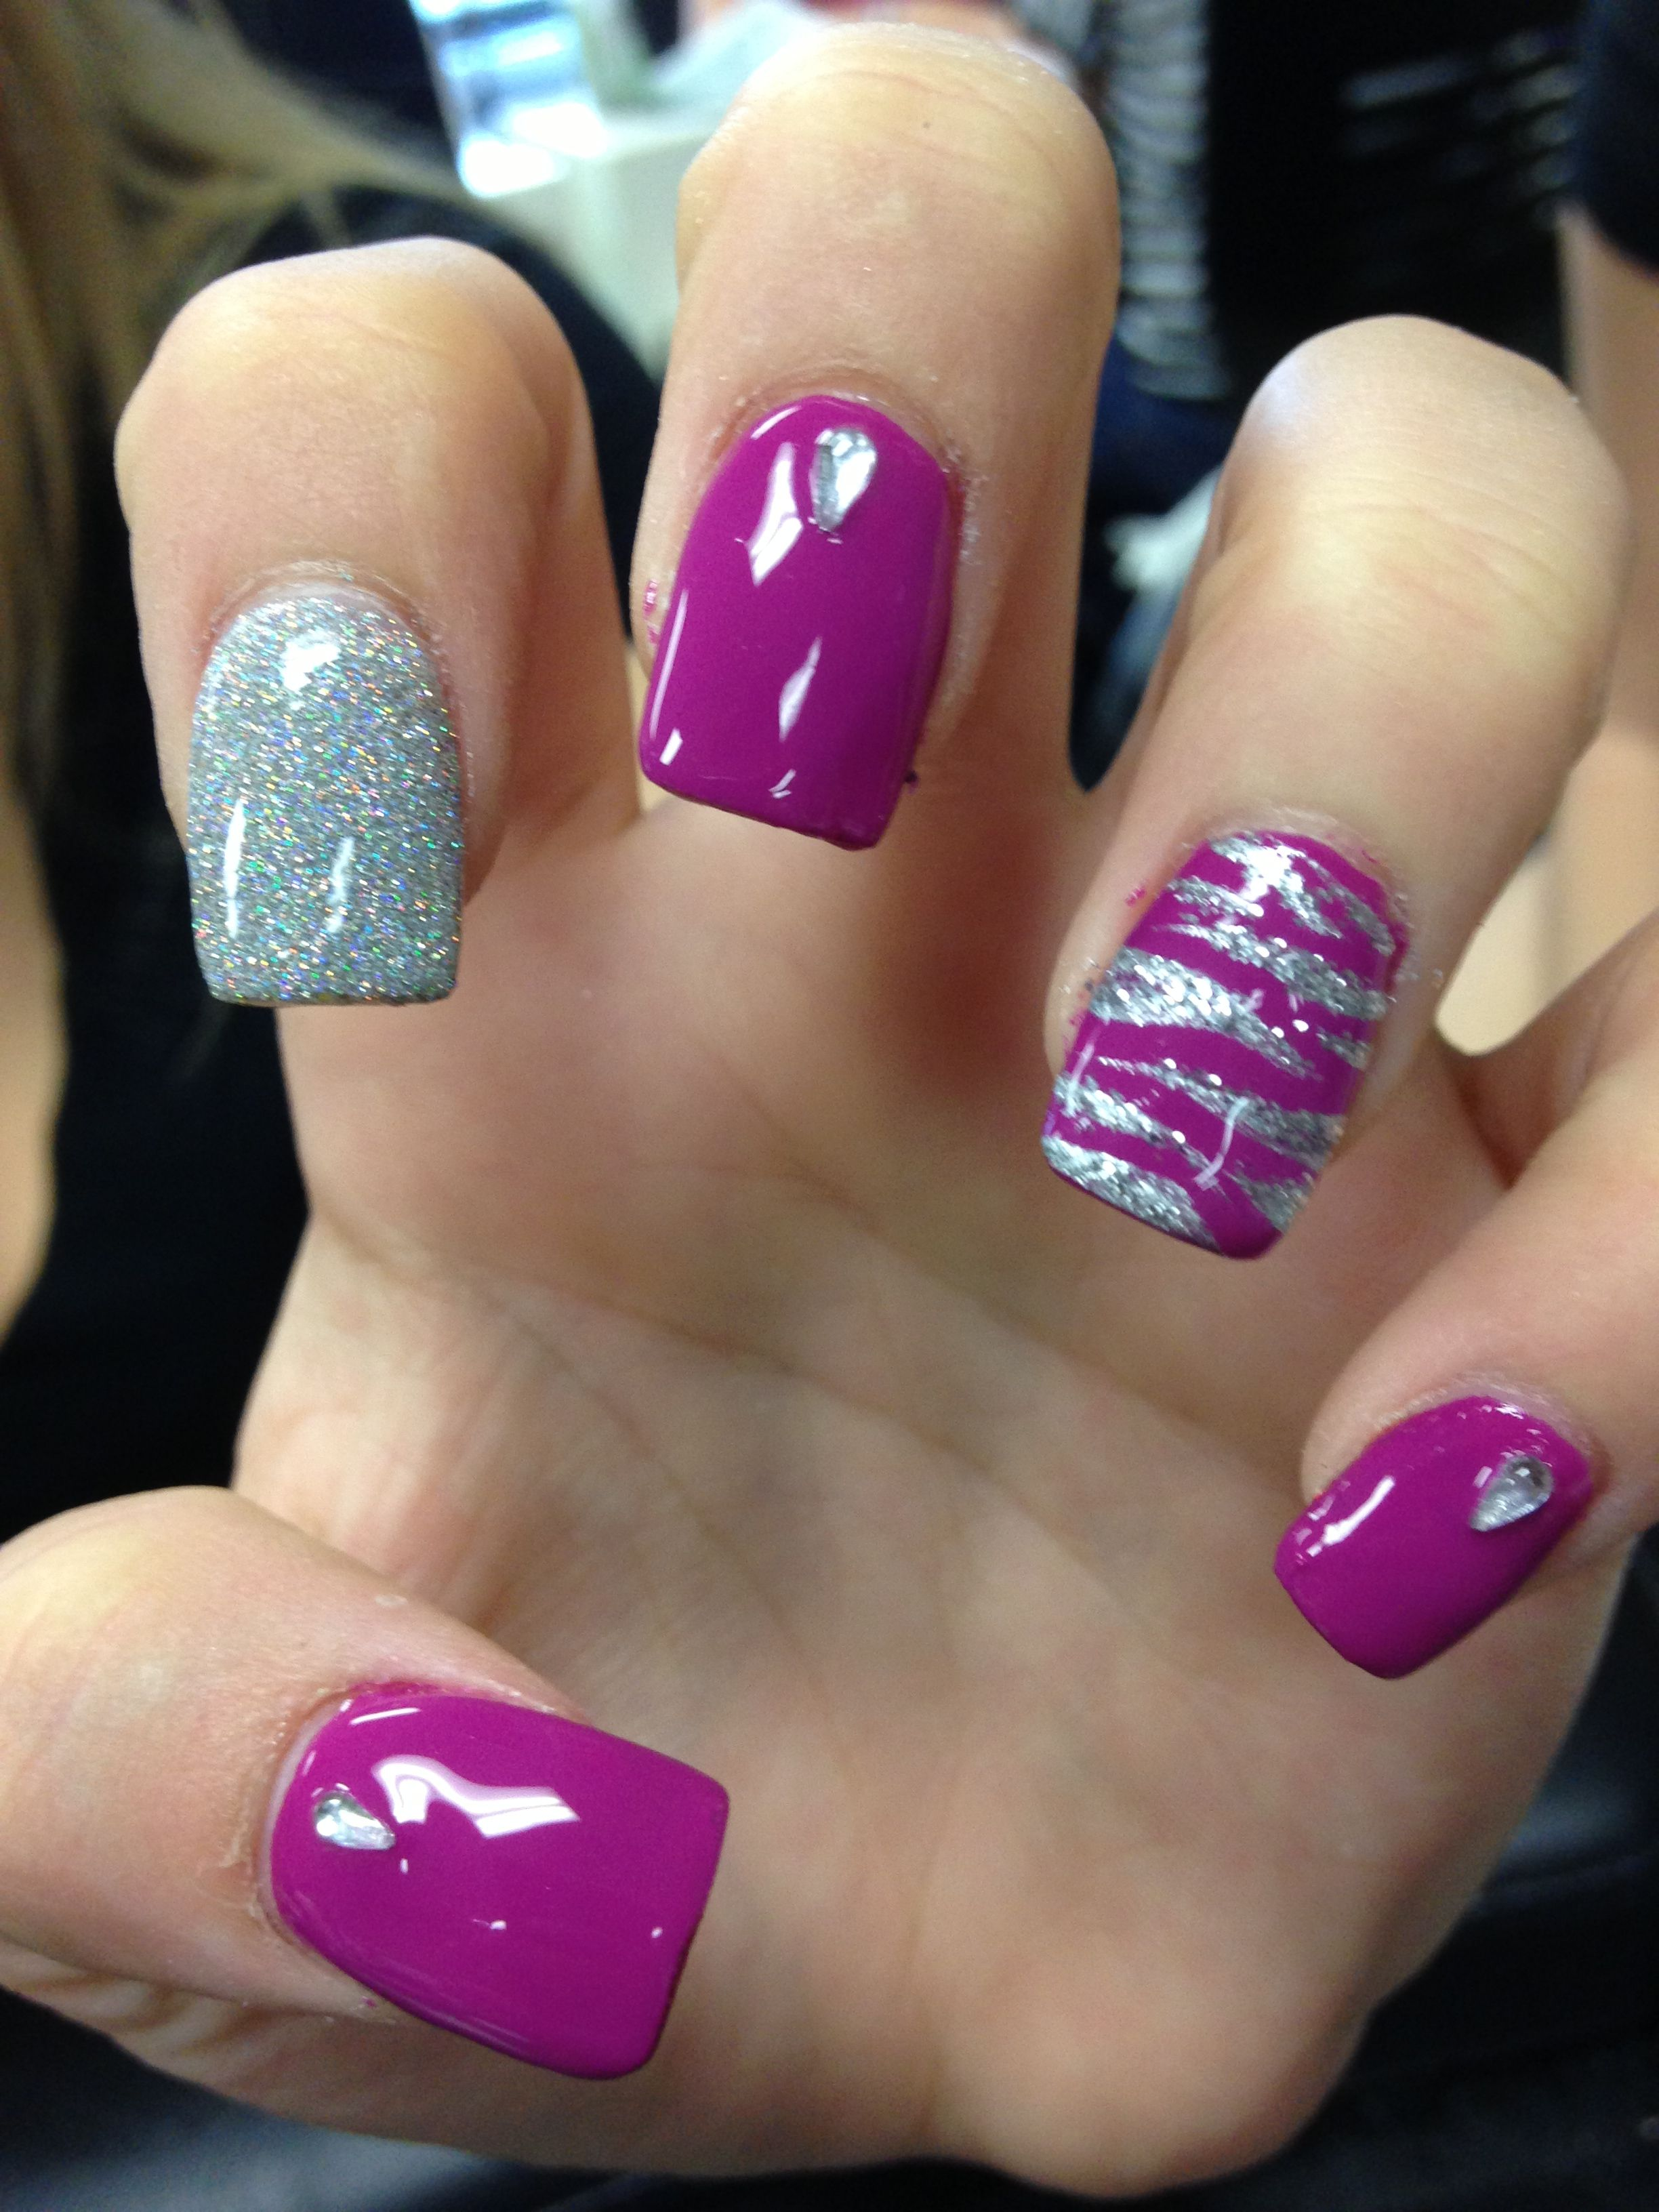 Make Your Own Nail Designs And Have Fun